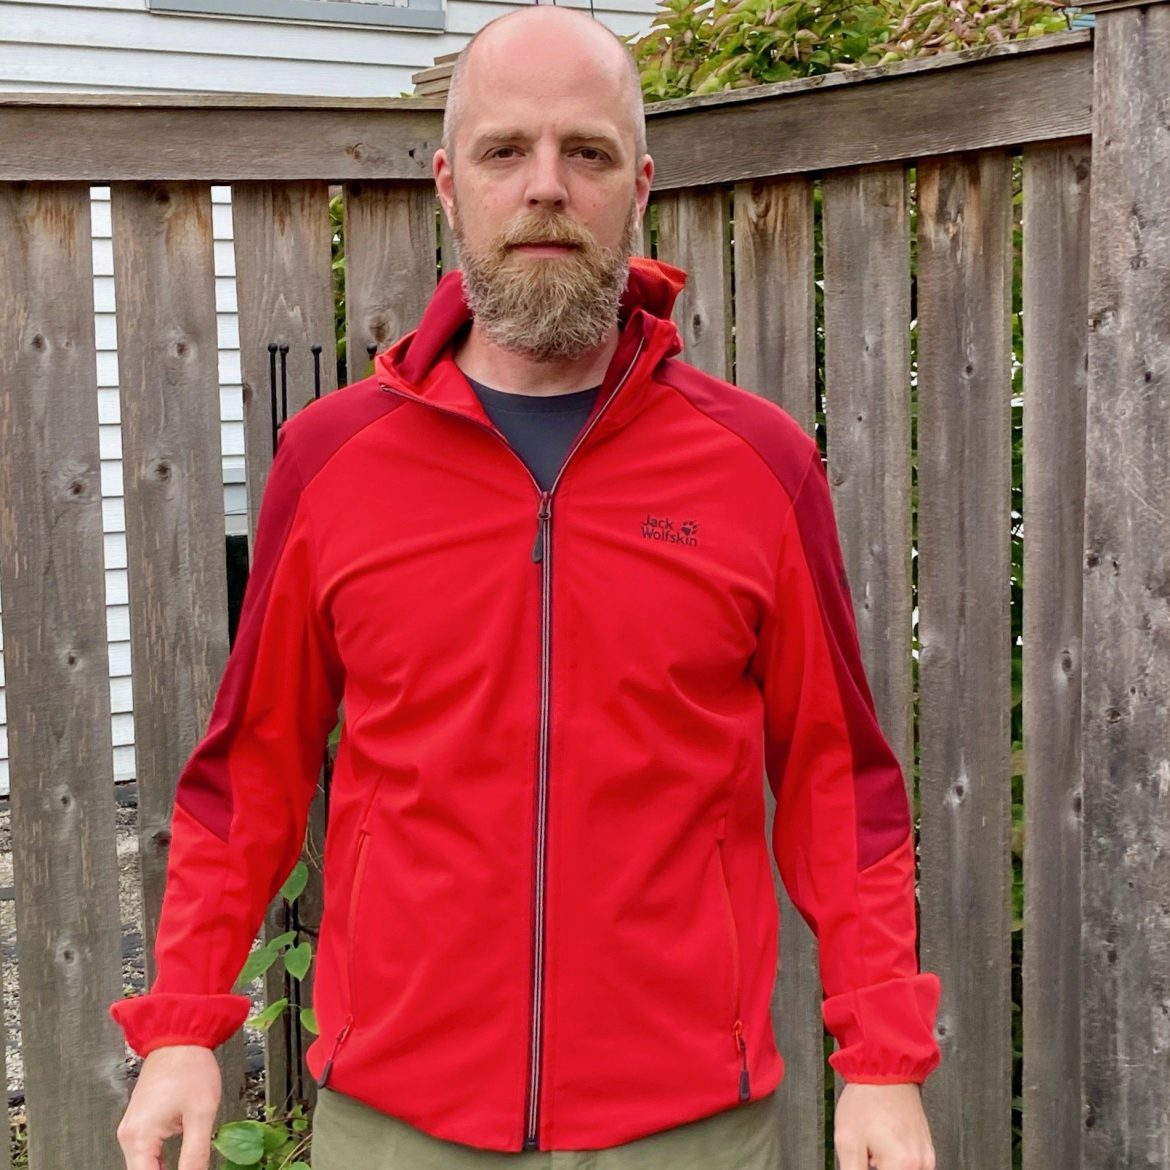 In Review: Jack Wolfskin Go Hike Softshell & Tech T